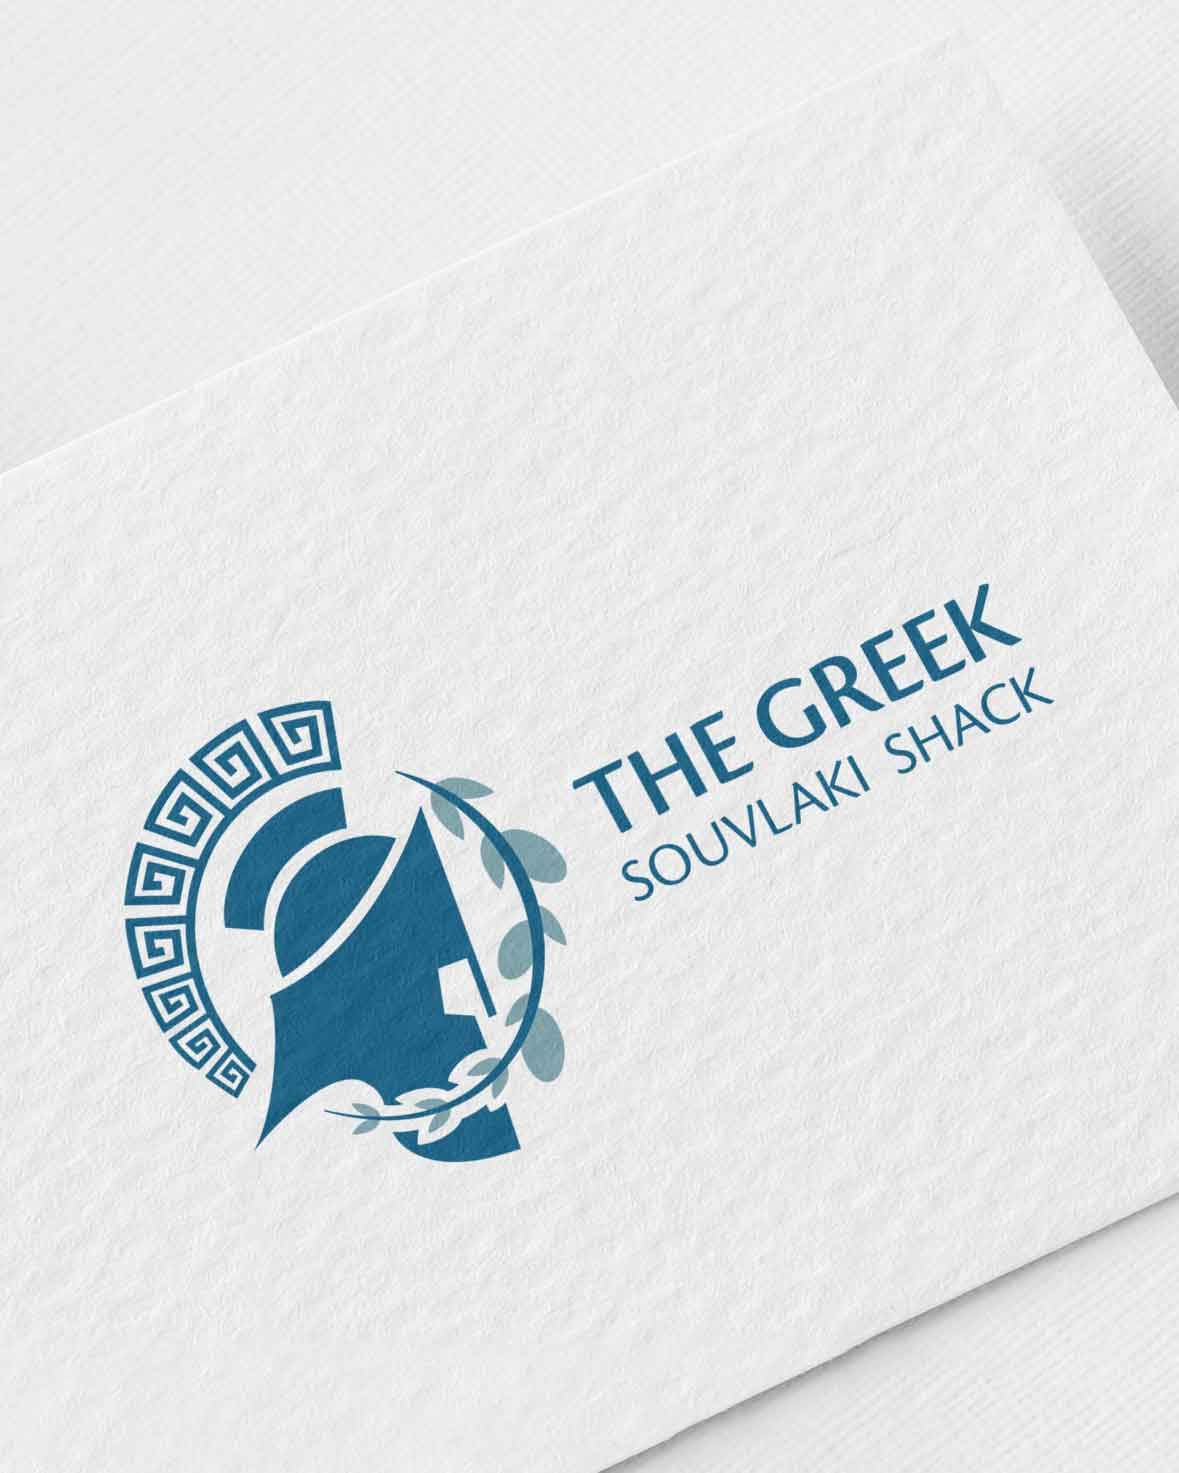 The Greek Souvlaki Shack Restaurant Logo Design Patricia Danochristos